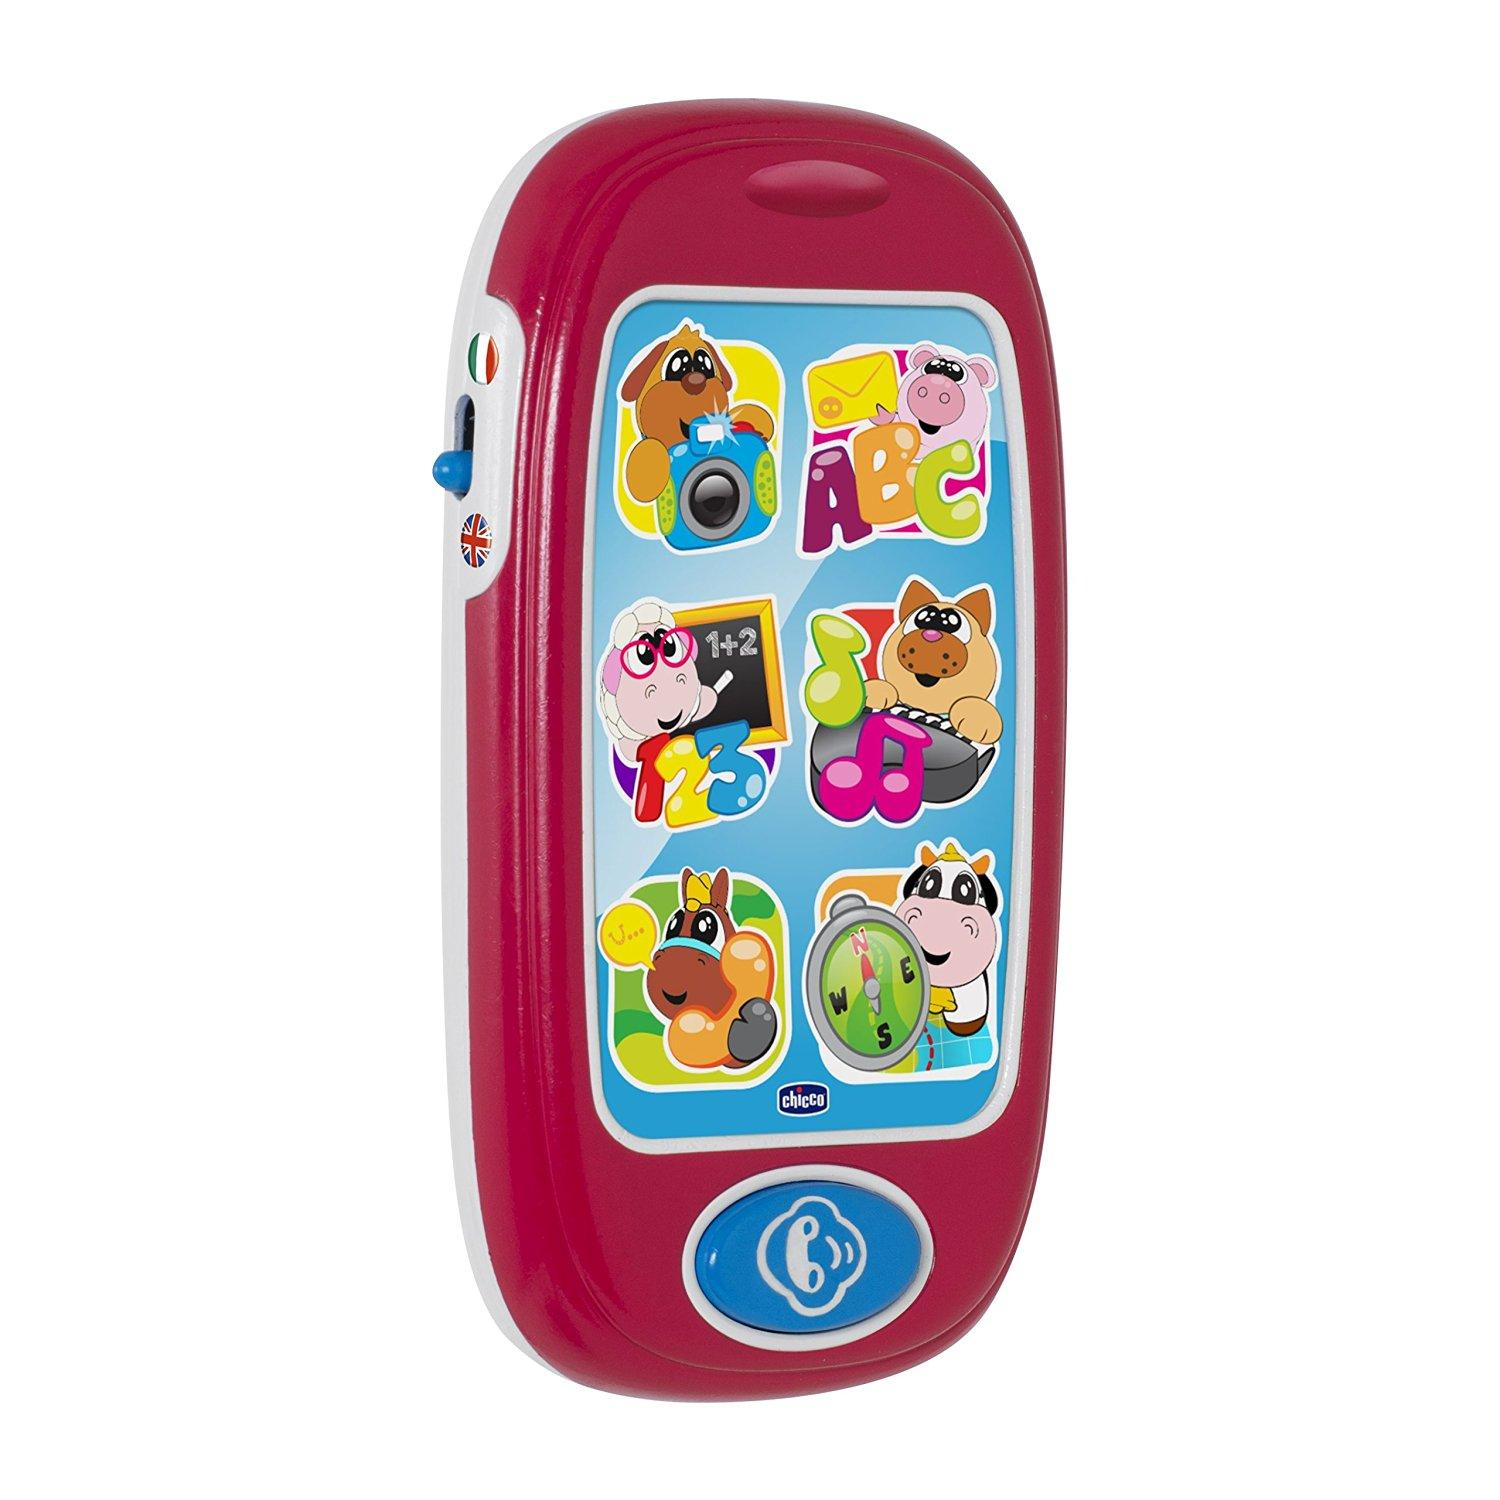 CHICCO ABC SMARPHONE ANIMALI 07853 ARTSANA CHICCO